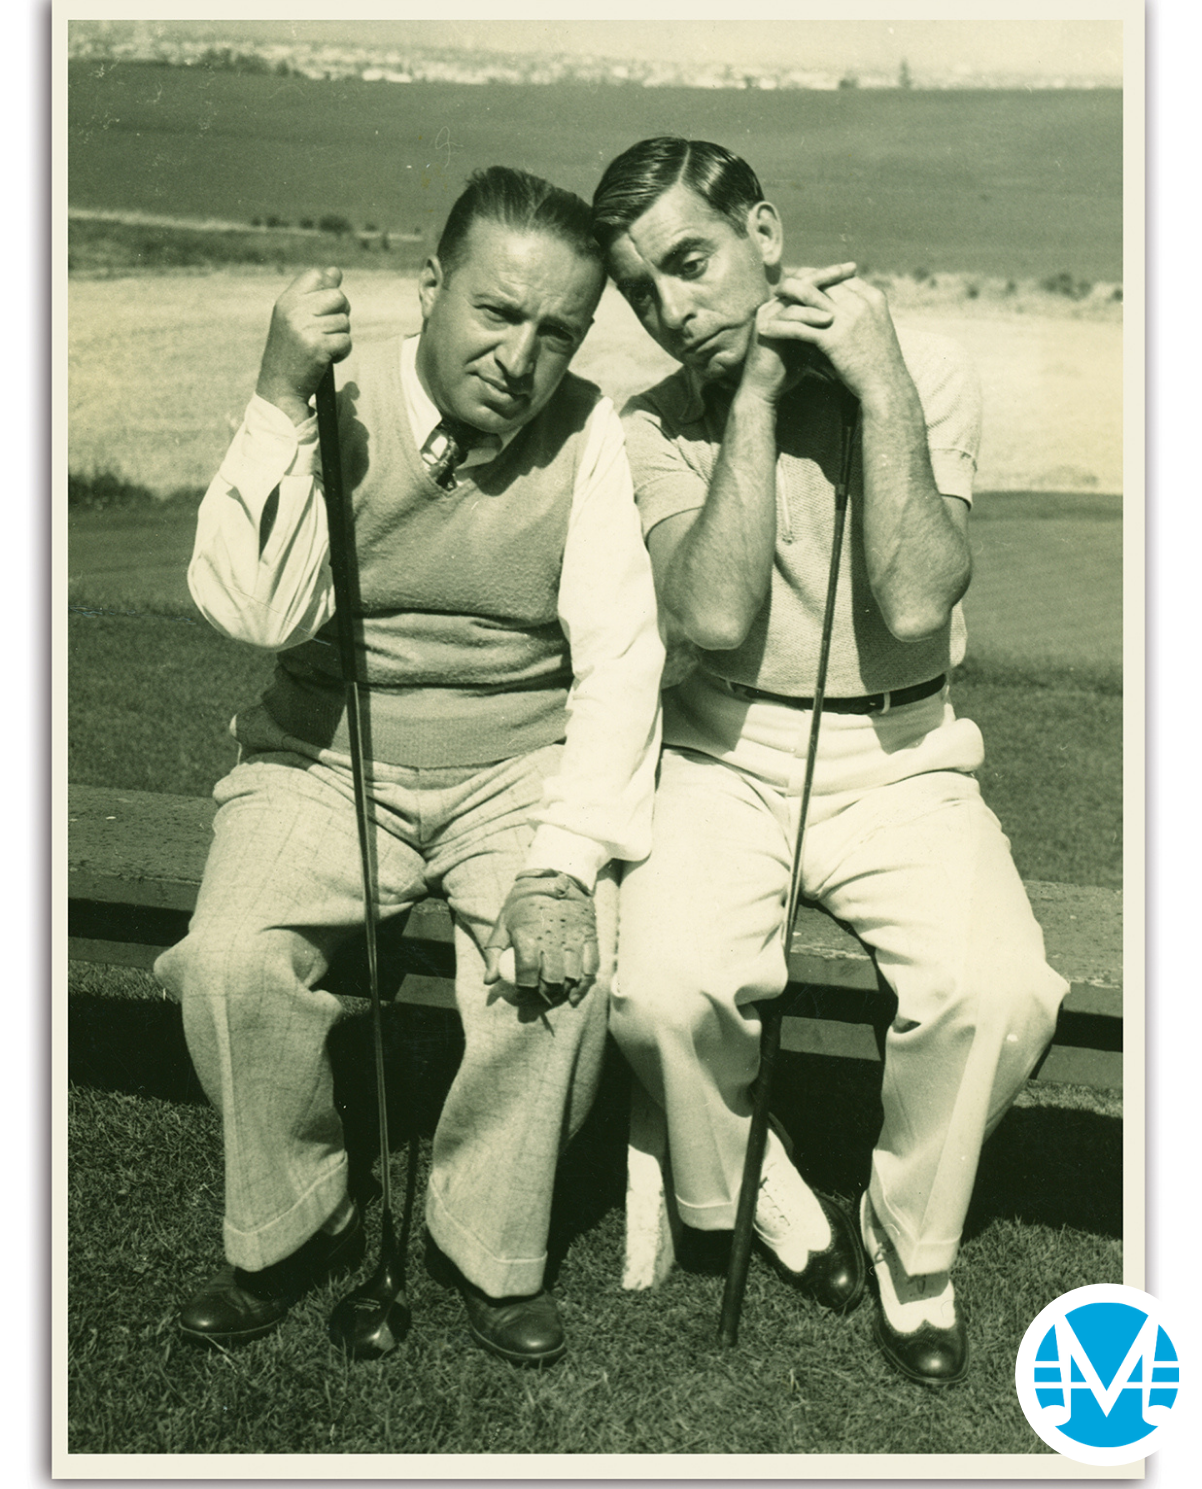 Gus Kahn and Eddit Canto pose with silly faces and hold golf clubs.